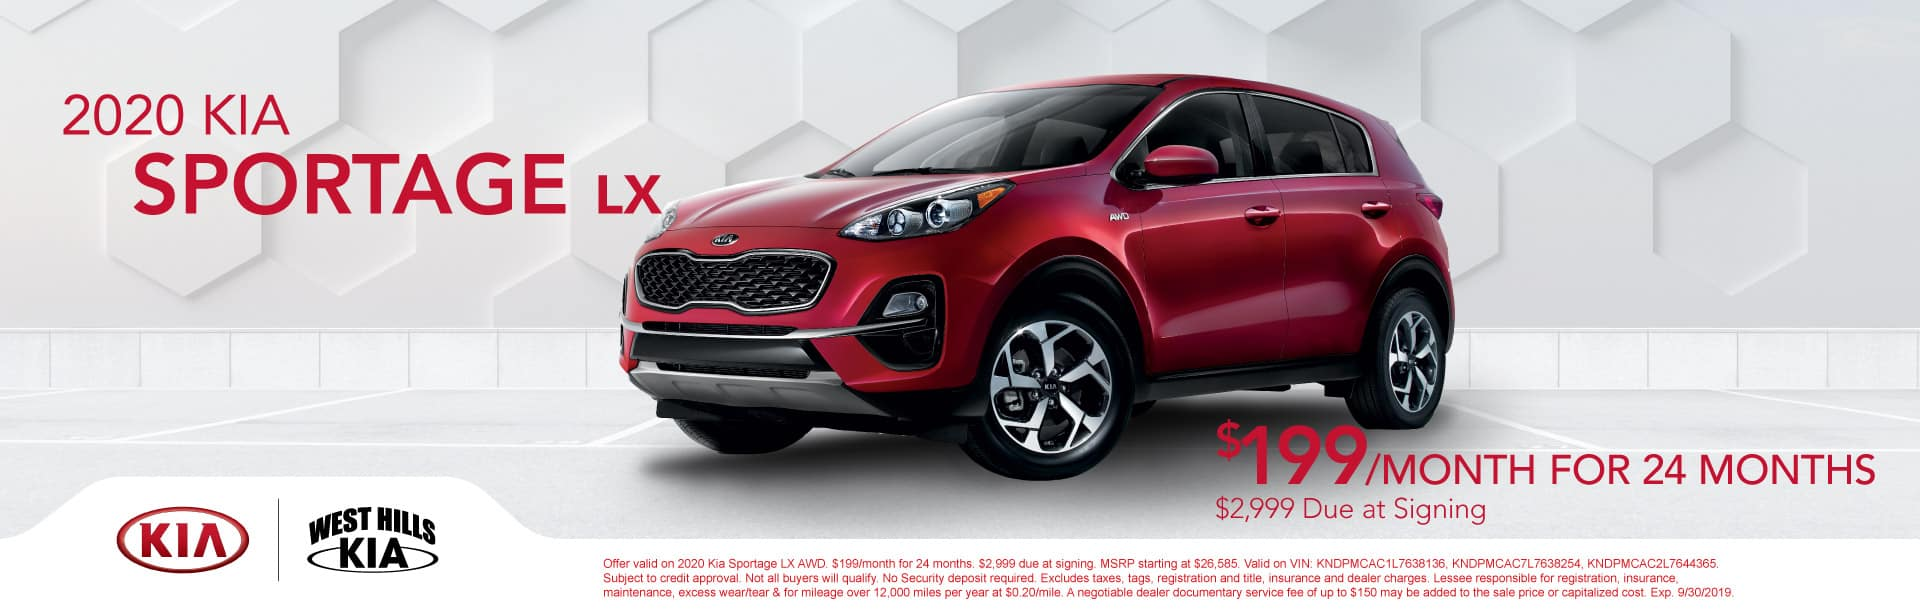 2020 Kia Sportage LX AWD $199/month for 24 months  $2,999 Due at Signing   Offer valid on 2020 Kia Sportage LX AWD. $199/month for 24 months. $2,999 due at signing. MSRP starting at $26,585. Valid on VIN: KNDPMCAC1L7638136, KNDPMCAC7L7638254, KNDPMCAC2L7644365. Subject to credit approval. Not all buyers will qualify. No Security deposit required. Excludes taxes, tags, registration and title, insurance and dealer charges. Lessee responsible for registration, insurance, maintenance, excess wear/tear & for mileage over 12,000 miles per year at $0.20/mile. A negotiable dealer documentary service fee of up to $150 may be added to the sale price or capitalized cost. Exp. 9/30/2019.